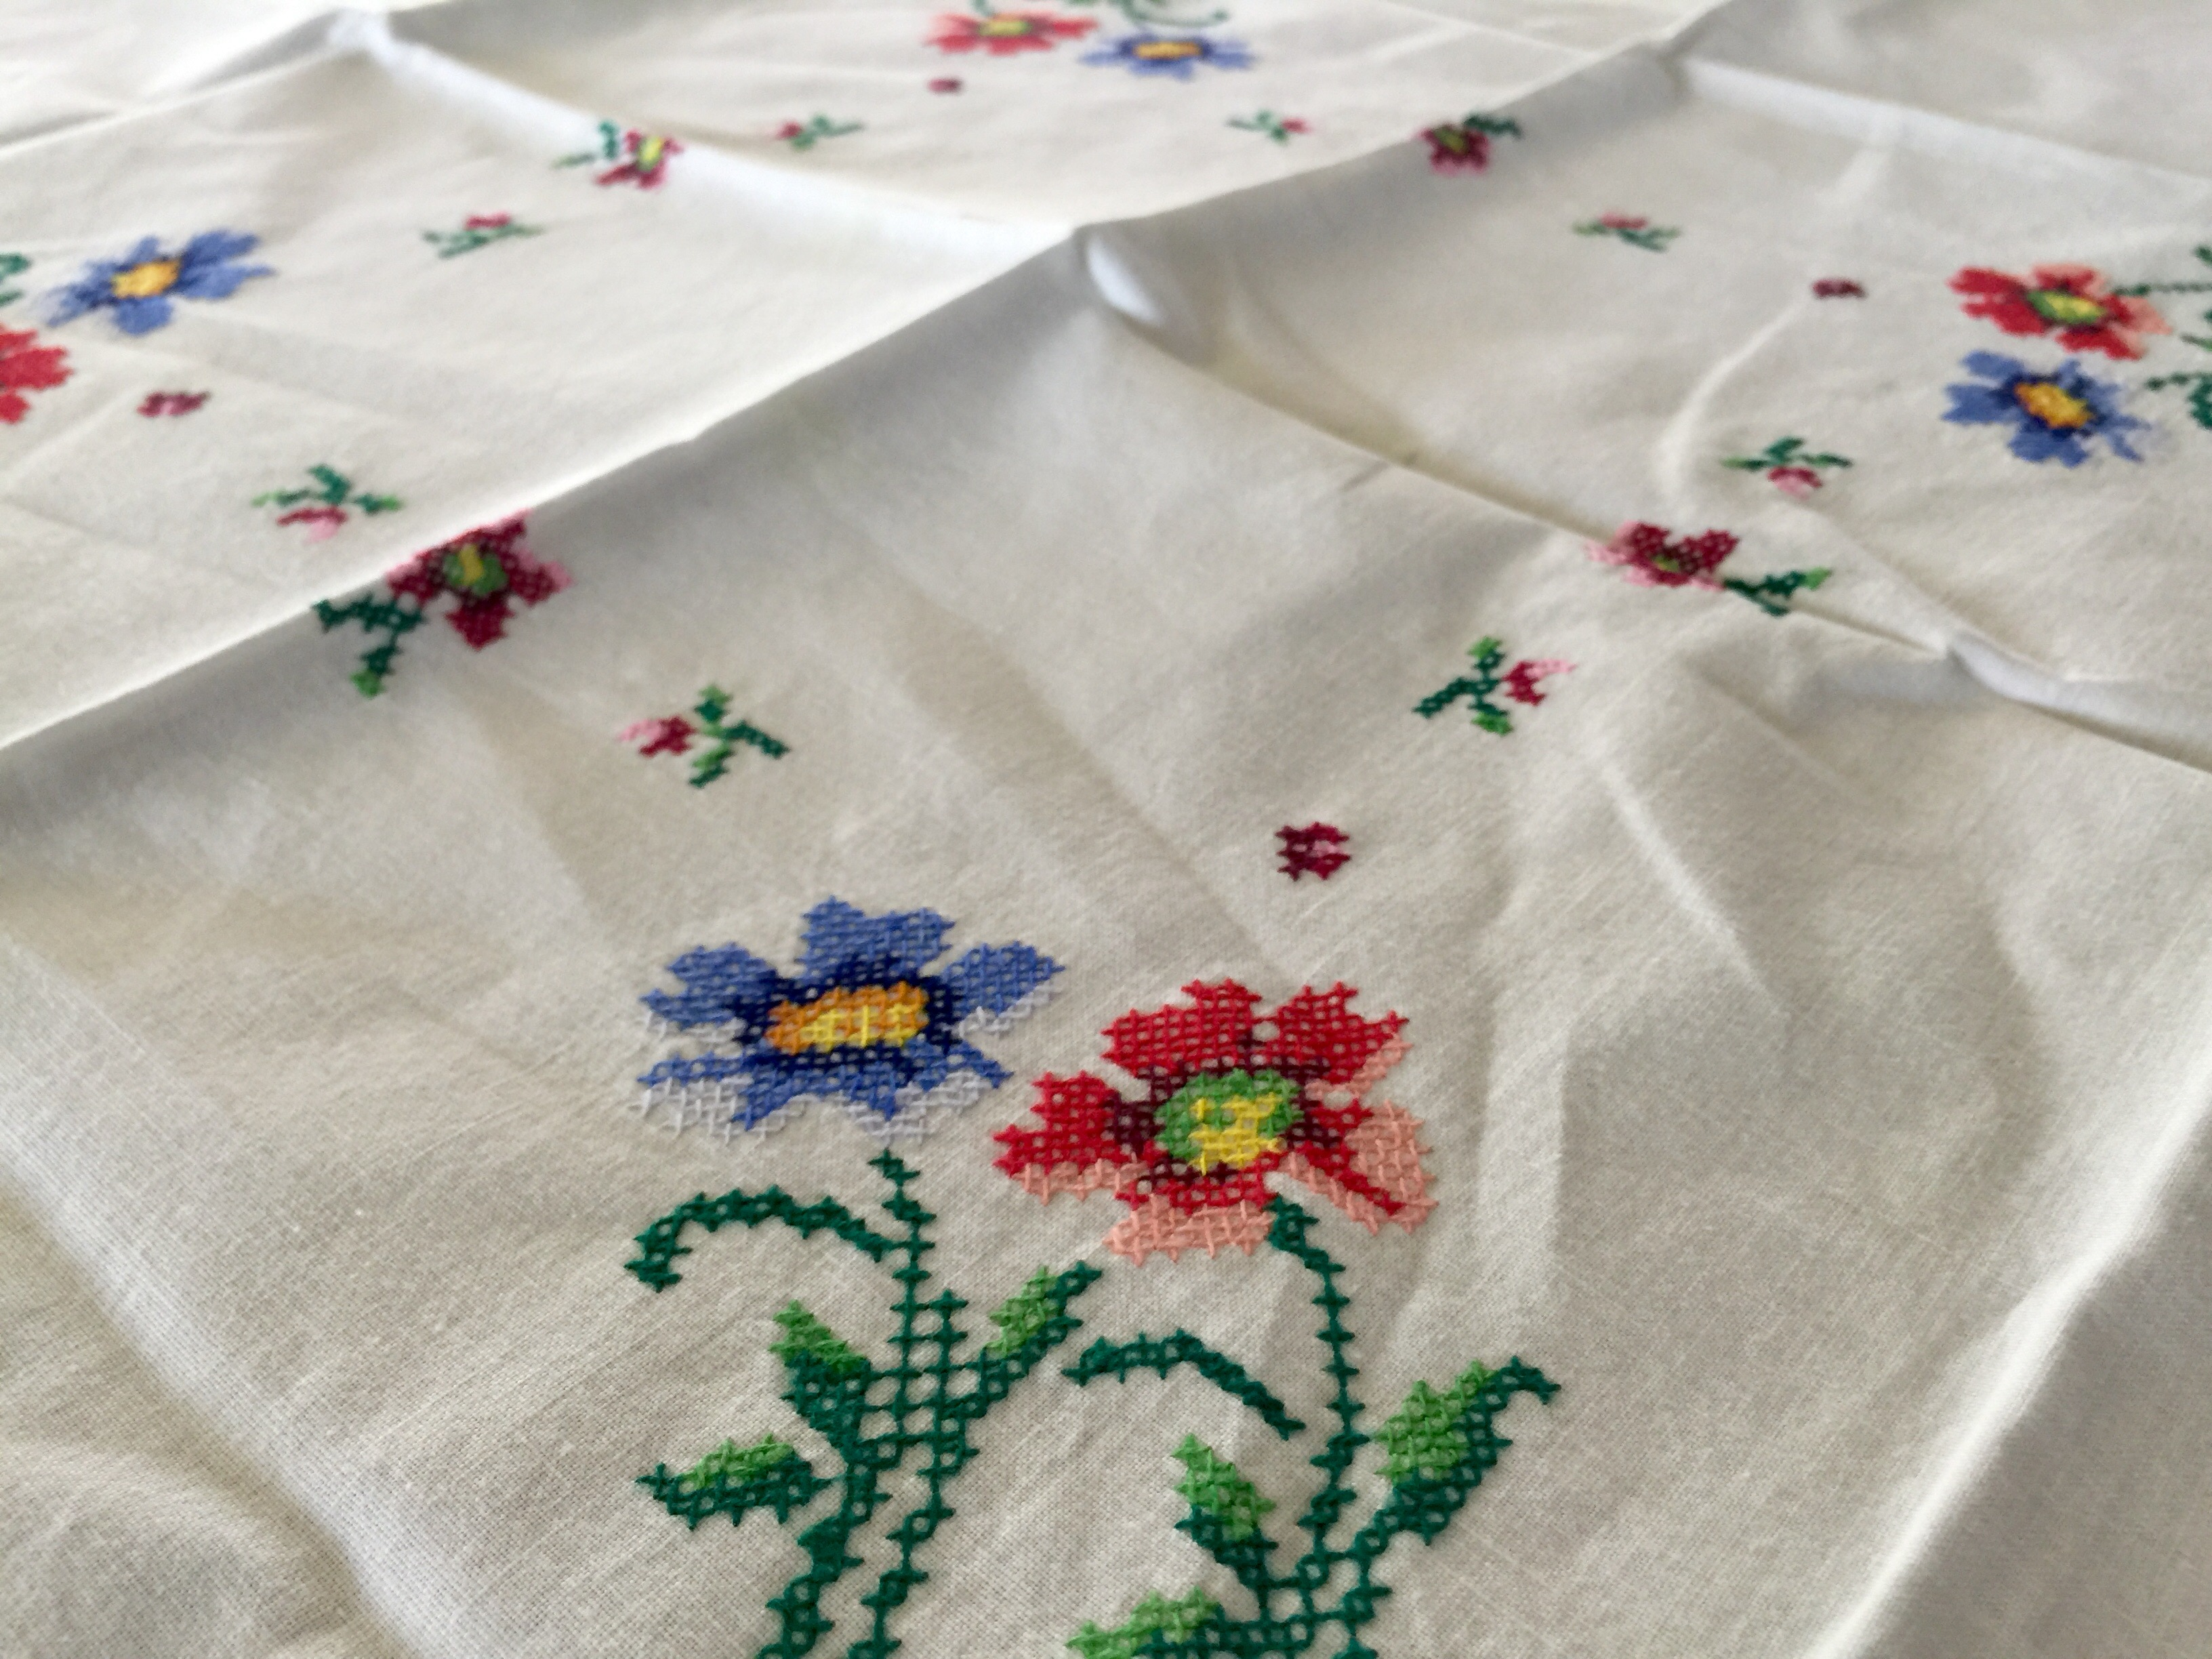 https://foodforayear.com/portfolio/for-sale-by-emily-32-x-32-hand-embroidered-cross-stitch-table-square-28/